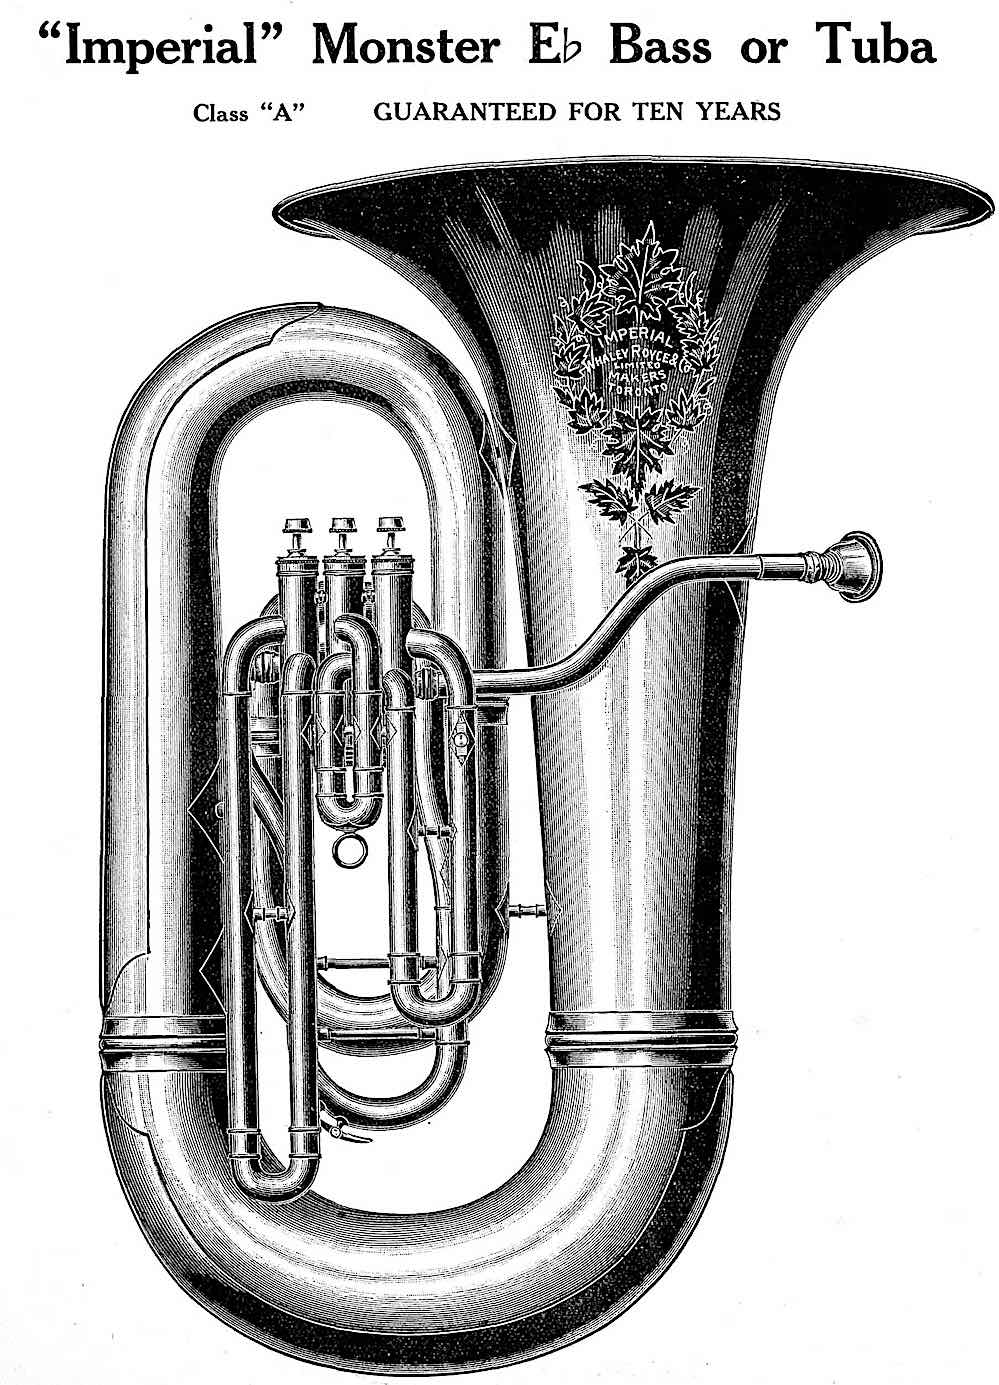 the Biggest Tuba available in 1890, an illustration